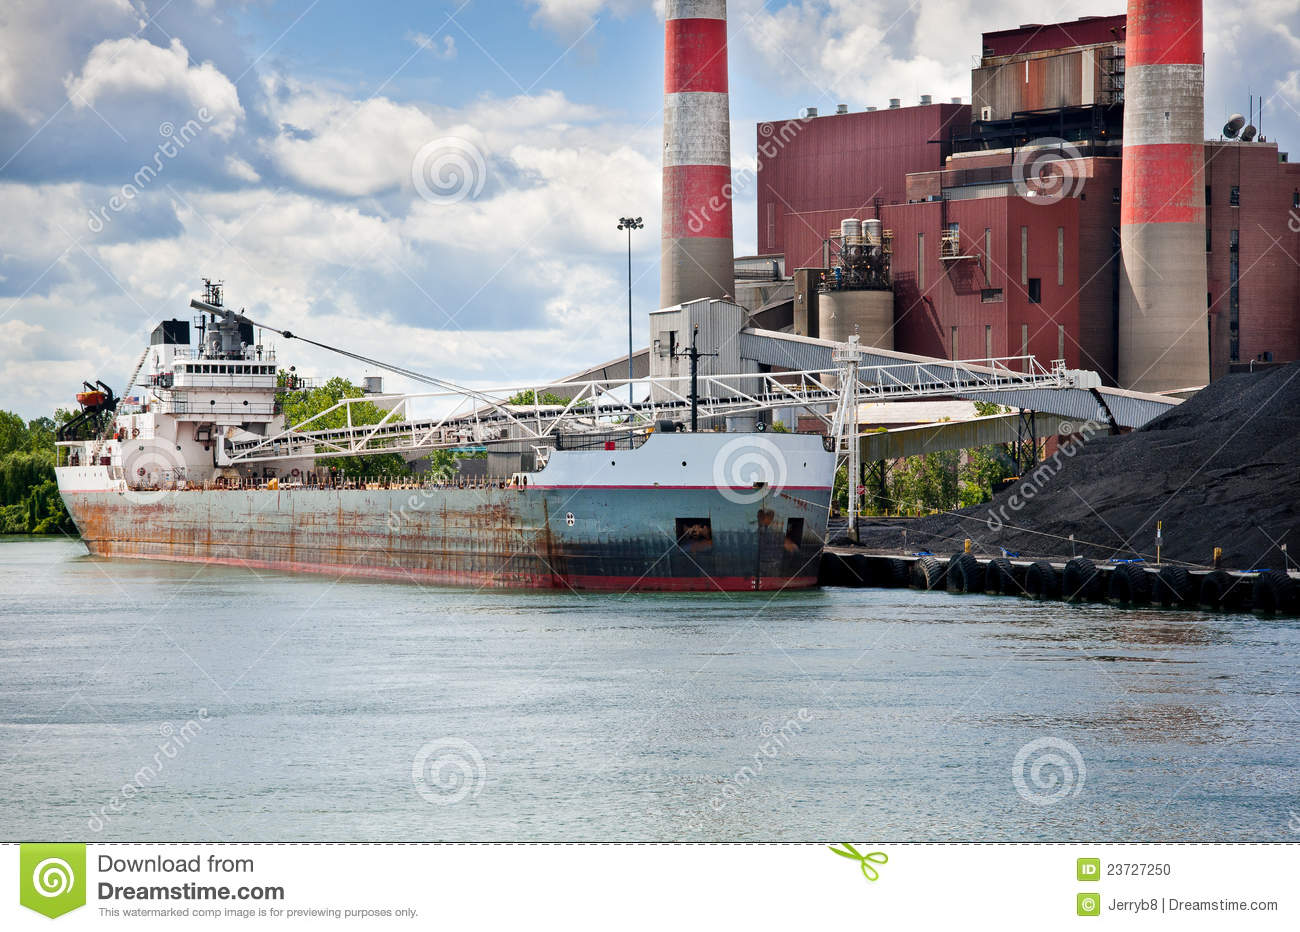 Coal Ship At Power Plant Detroit River Stock Photo - Image: 23727250